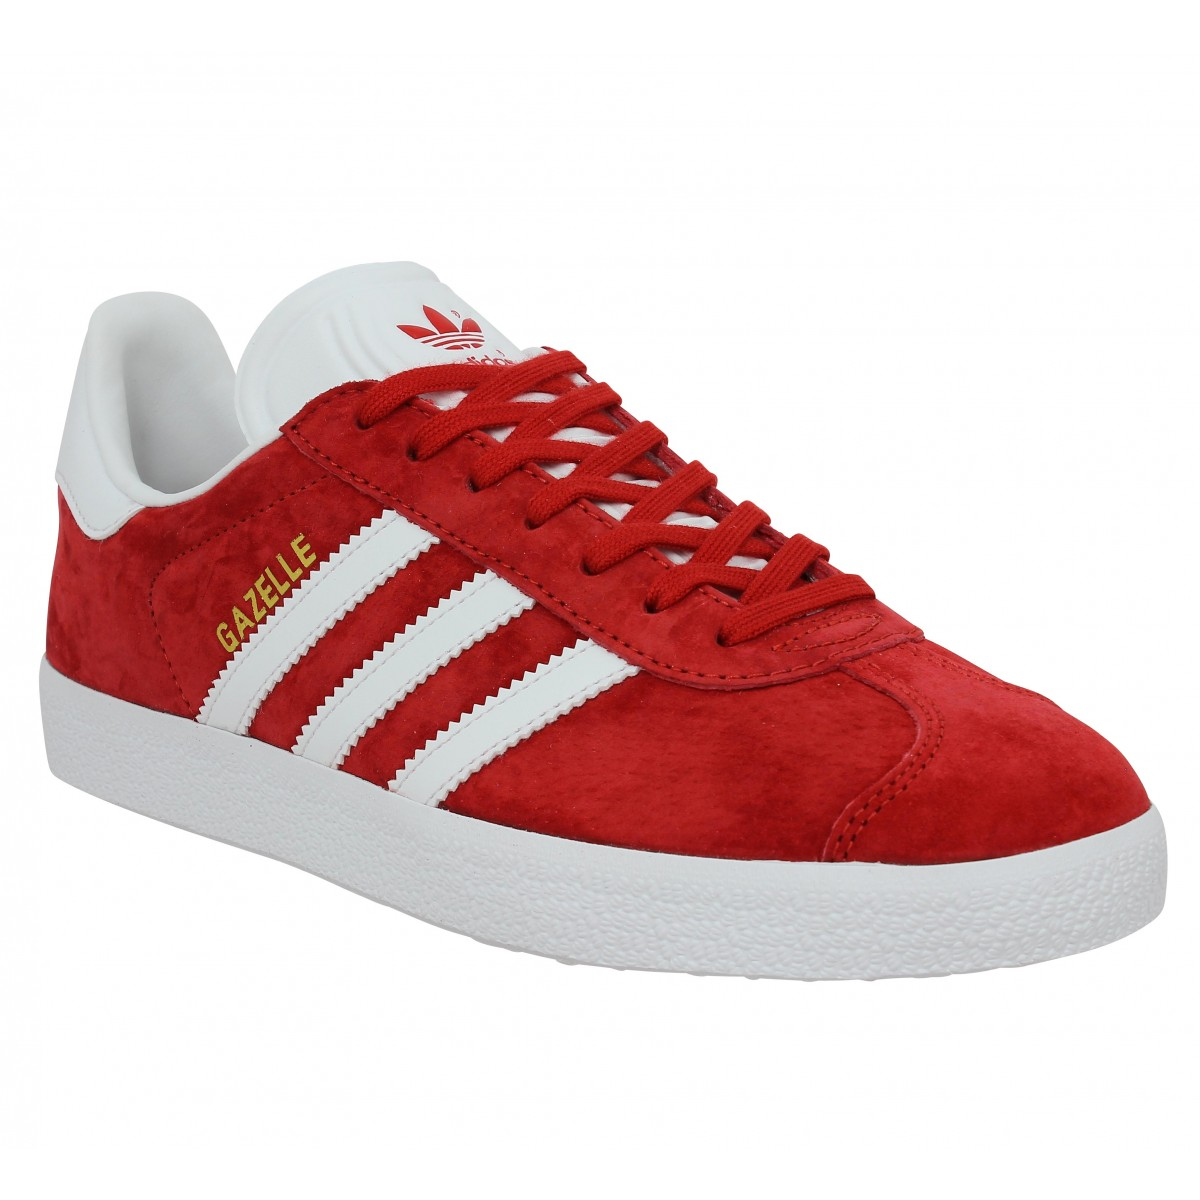 adidas gazelle femme rouge adidas gazelle femme rouge france soldes adidas gazelle femme rouge. Black Bedroom Furniture Sets. Home Design Ideas